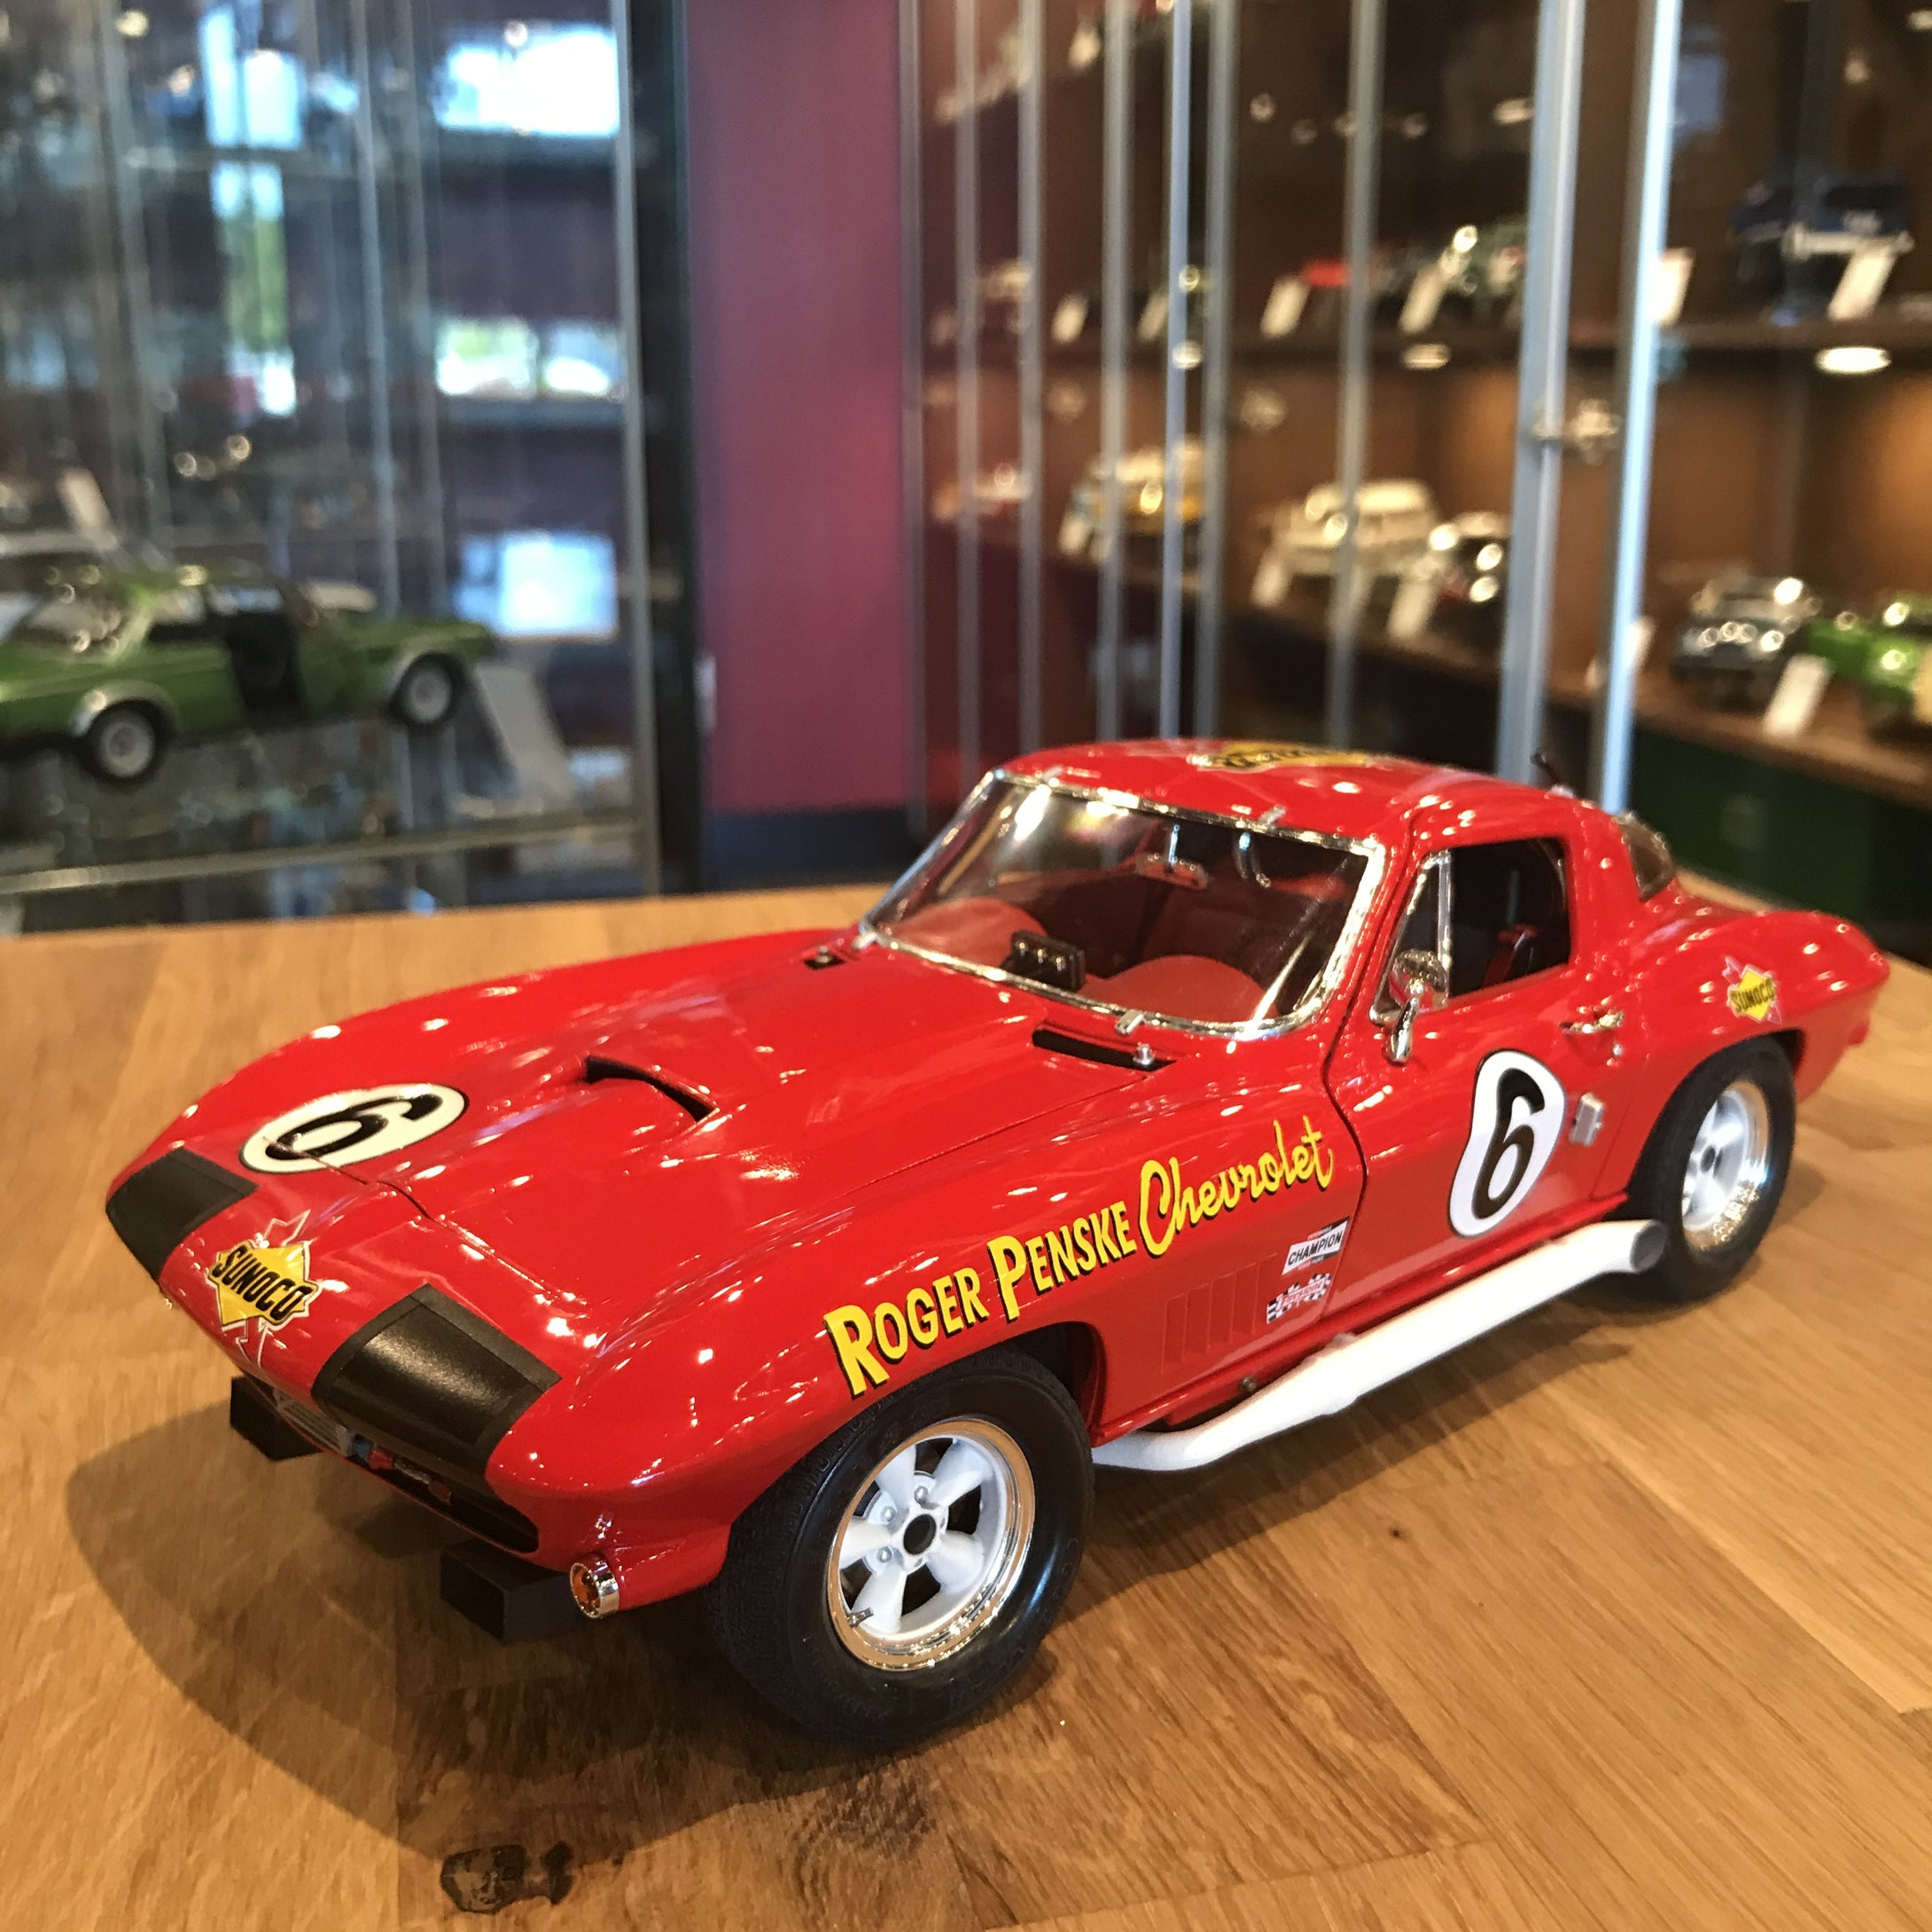 Exoto 1/18 1967 Exoto Corvette Sting Ray Competition #6 Class Winner Daytona 24 Hours Diecast Model Car MTB00074